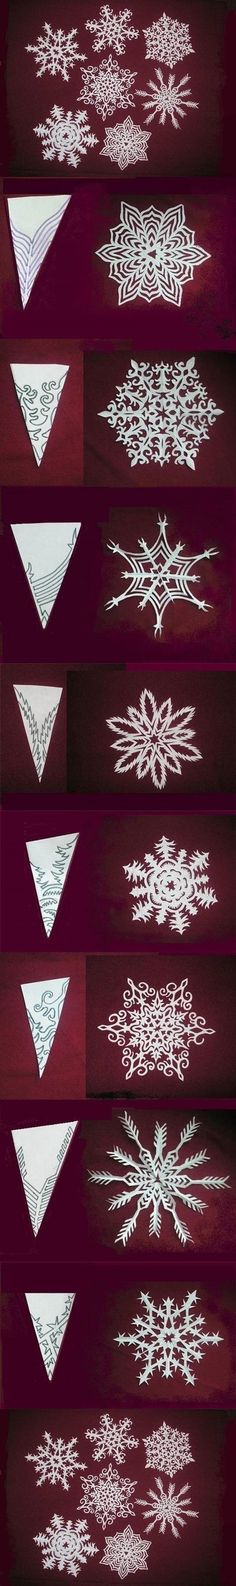 Make paper snowflakes .- Papier Schneeflocken basteln … Make Paper Snowflakes More - Noel Christmas, Winter Christmas, Christmas Ornaments, Christmas Ideas, Christmas Paper, Christmas Snowflakes, Office Christmas, Homemade Christmas, Winter Snow